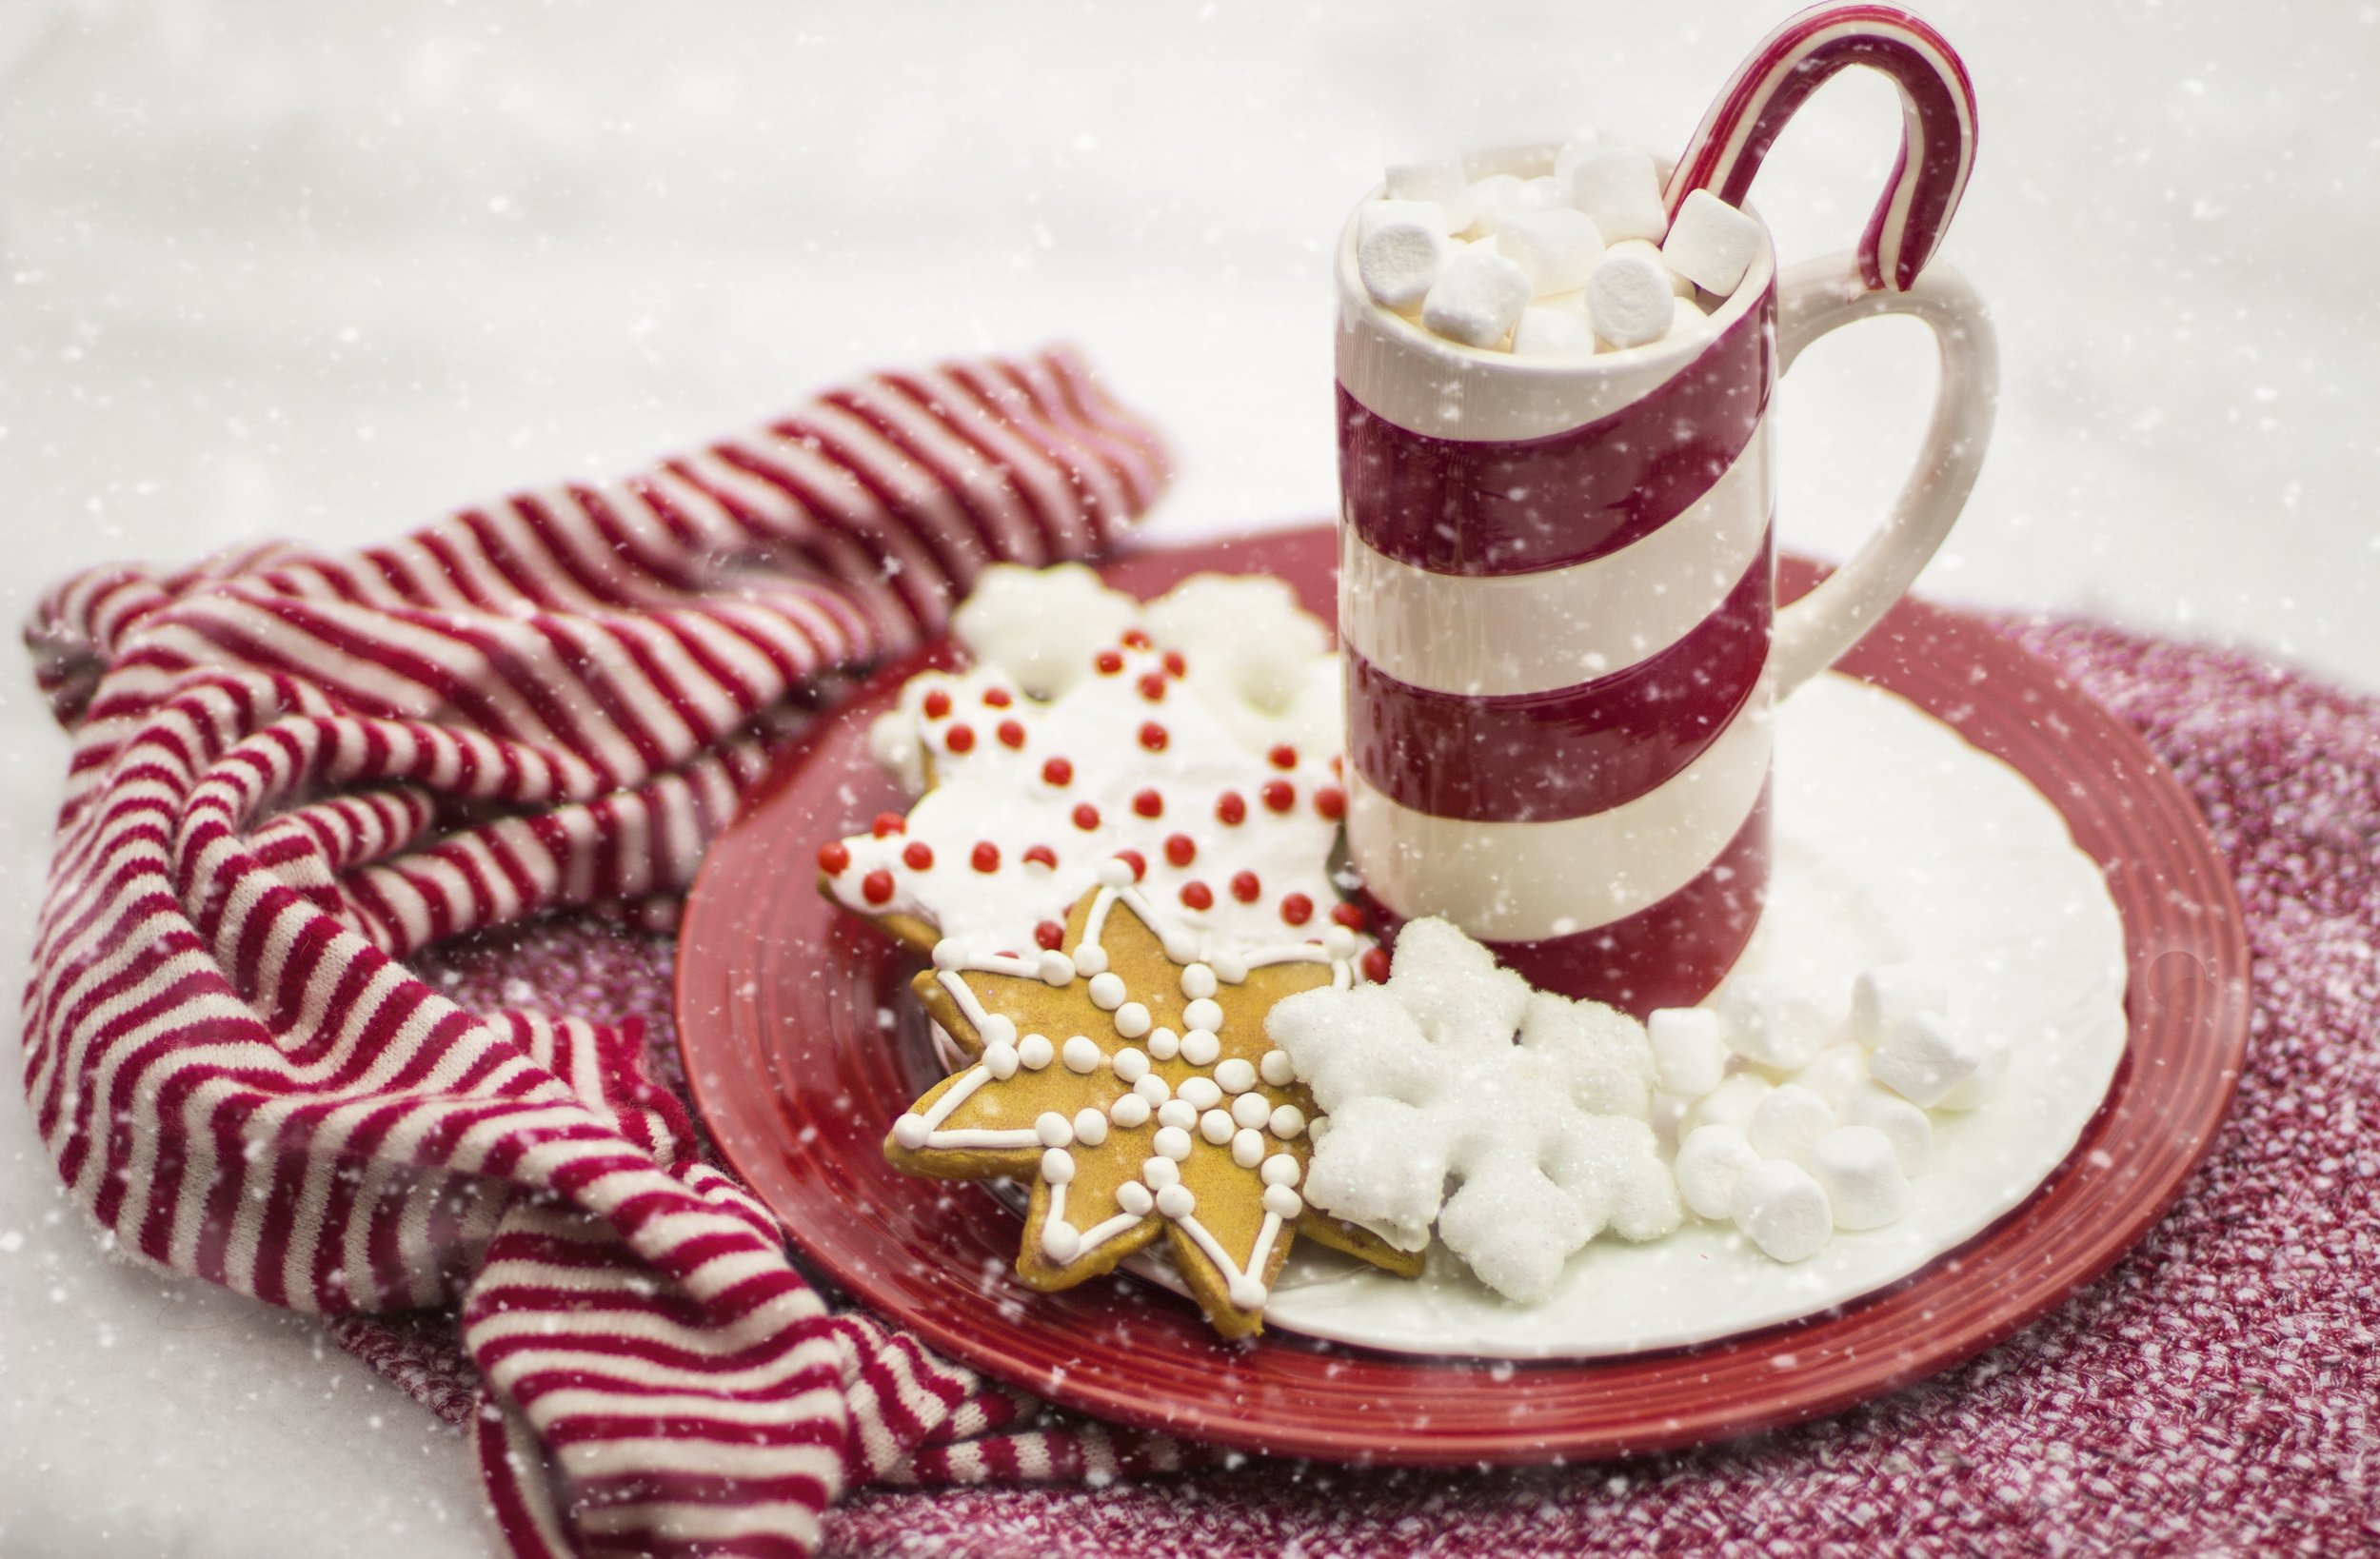 beverage-candy-candy-cane-260476.jpg